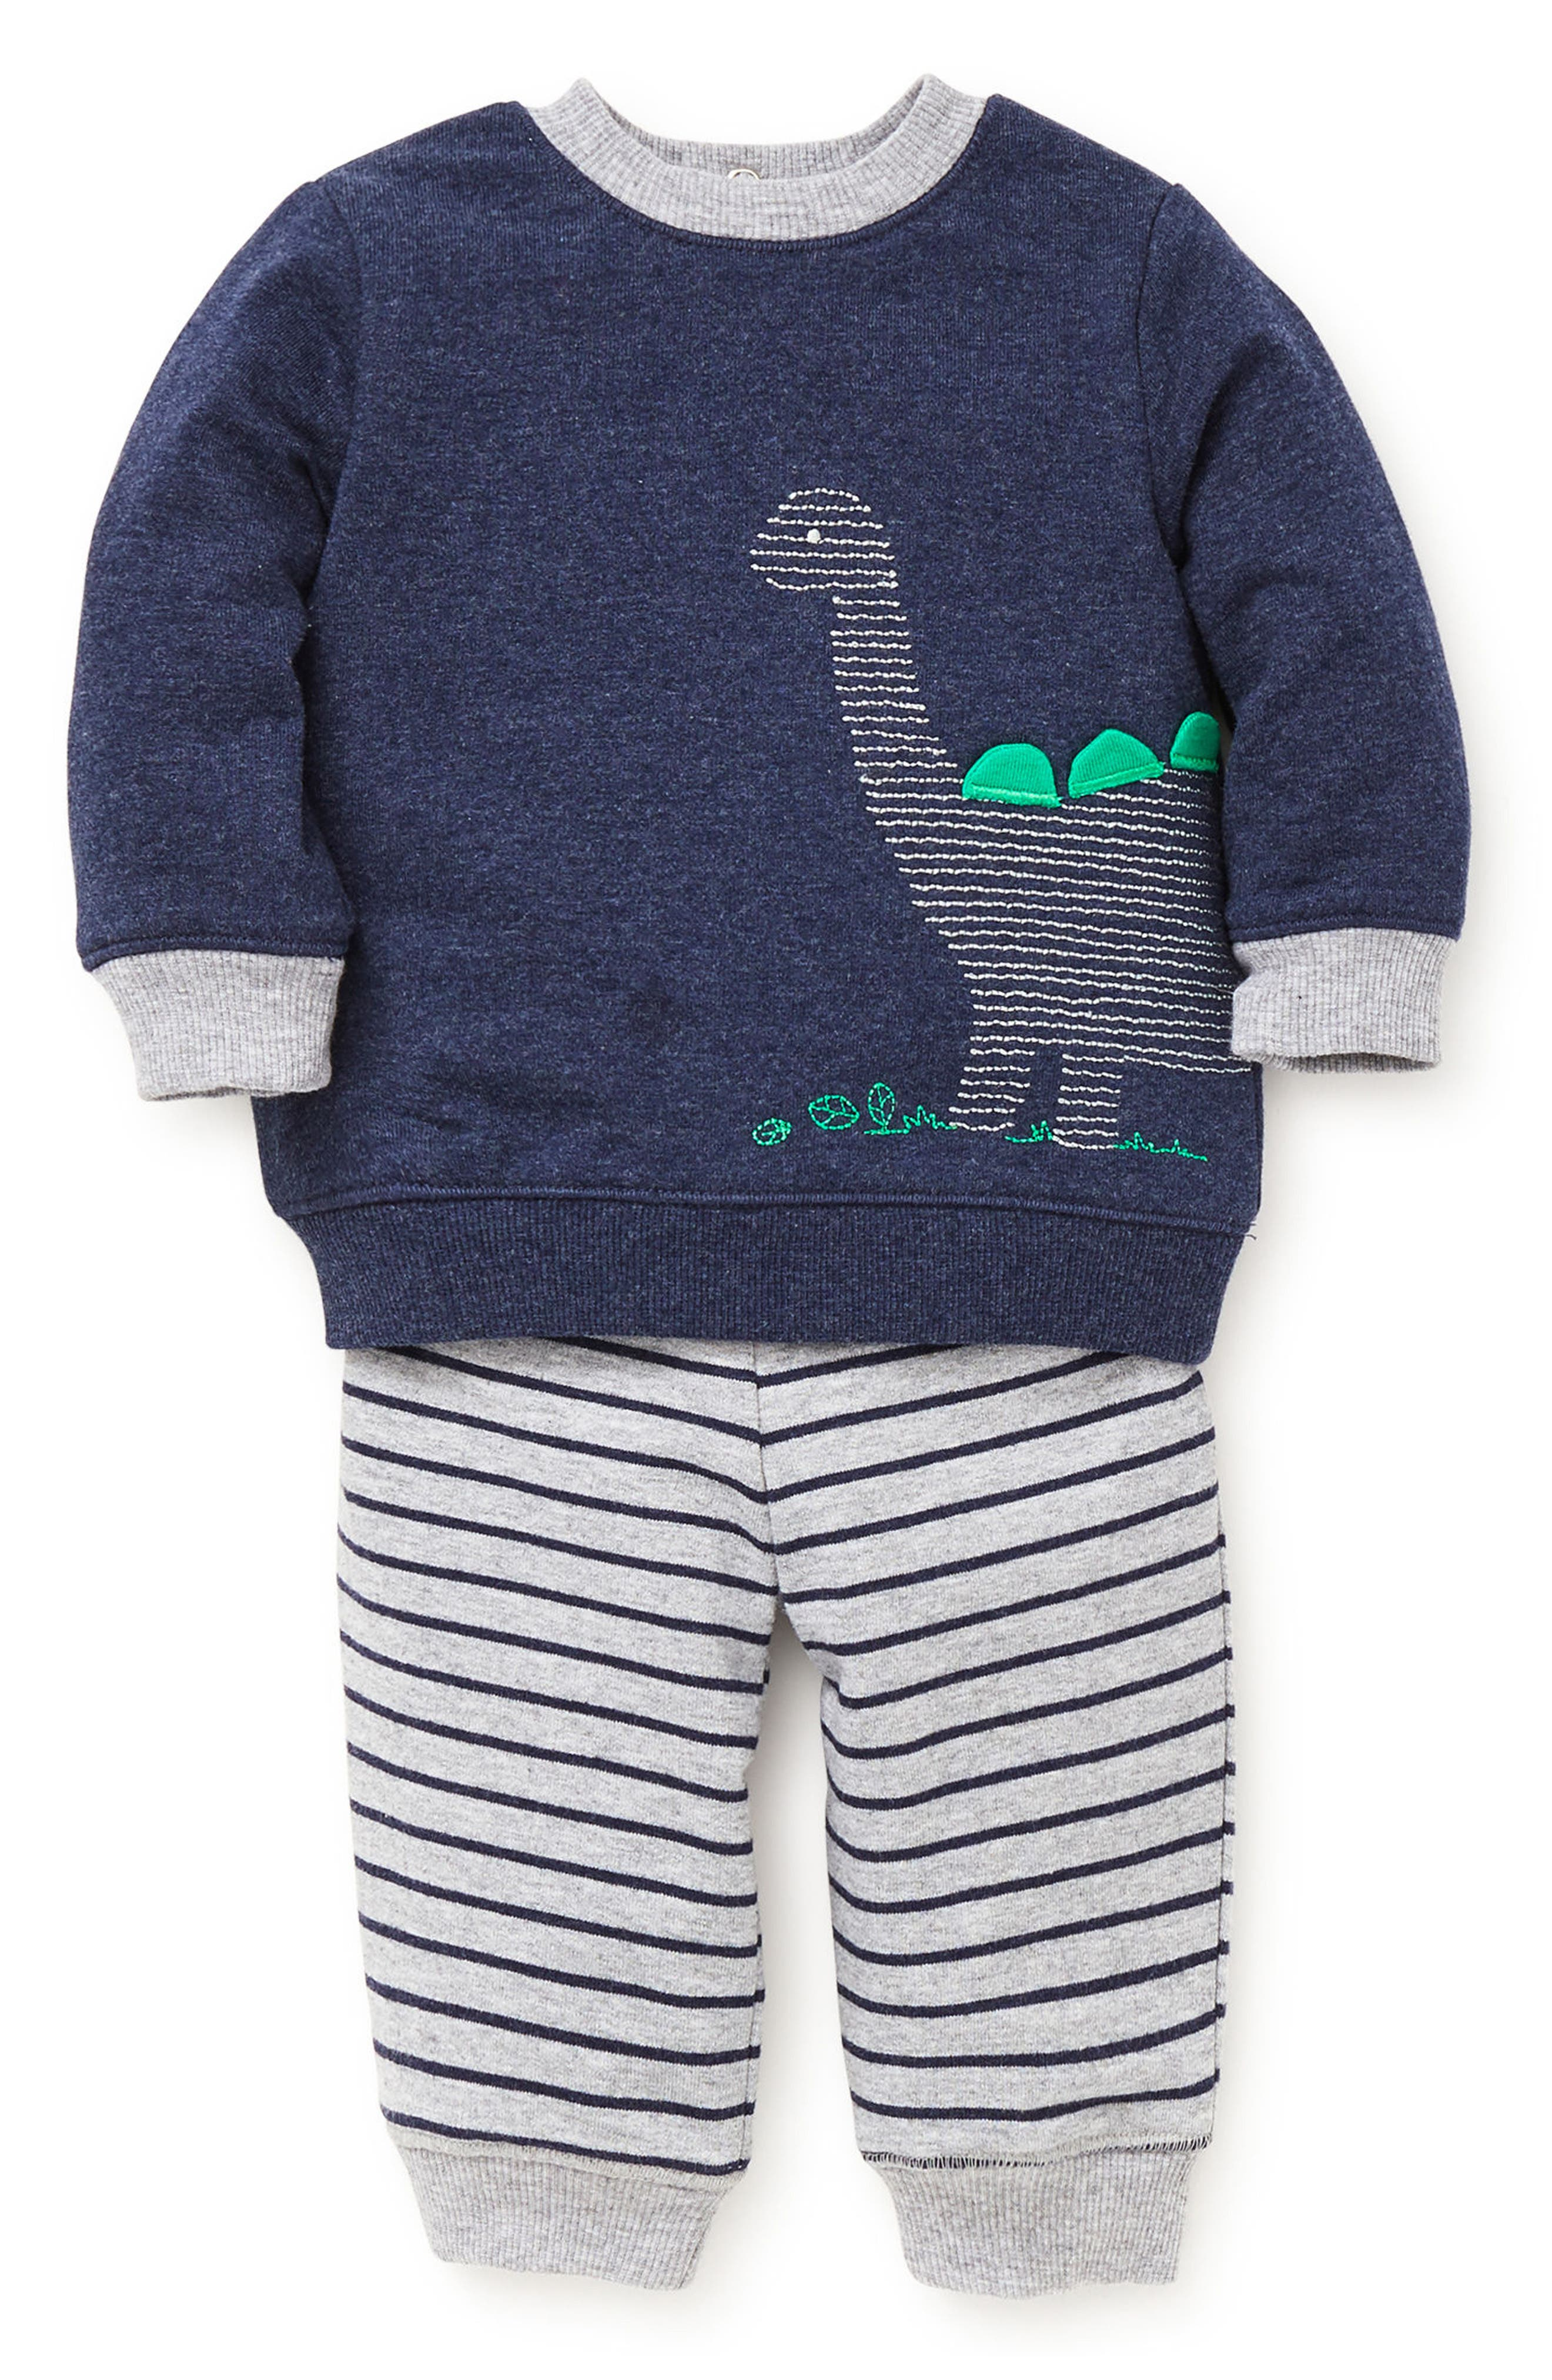 Dino Sweatshirt & Sweatpants Set,                         Main,                         color, 472